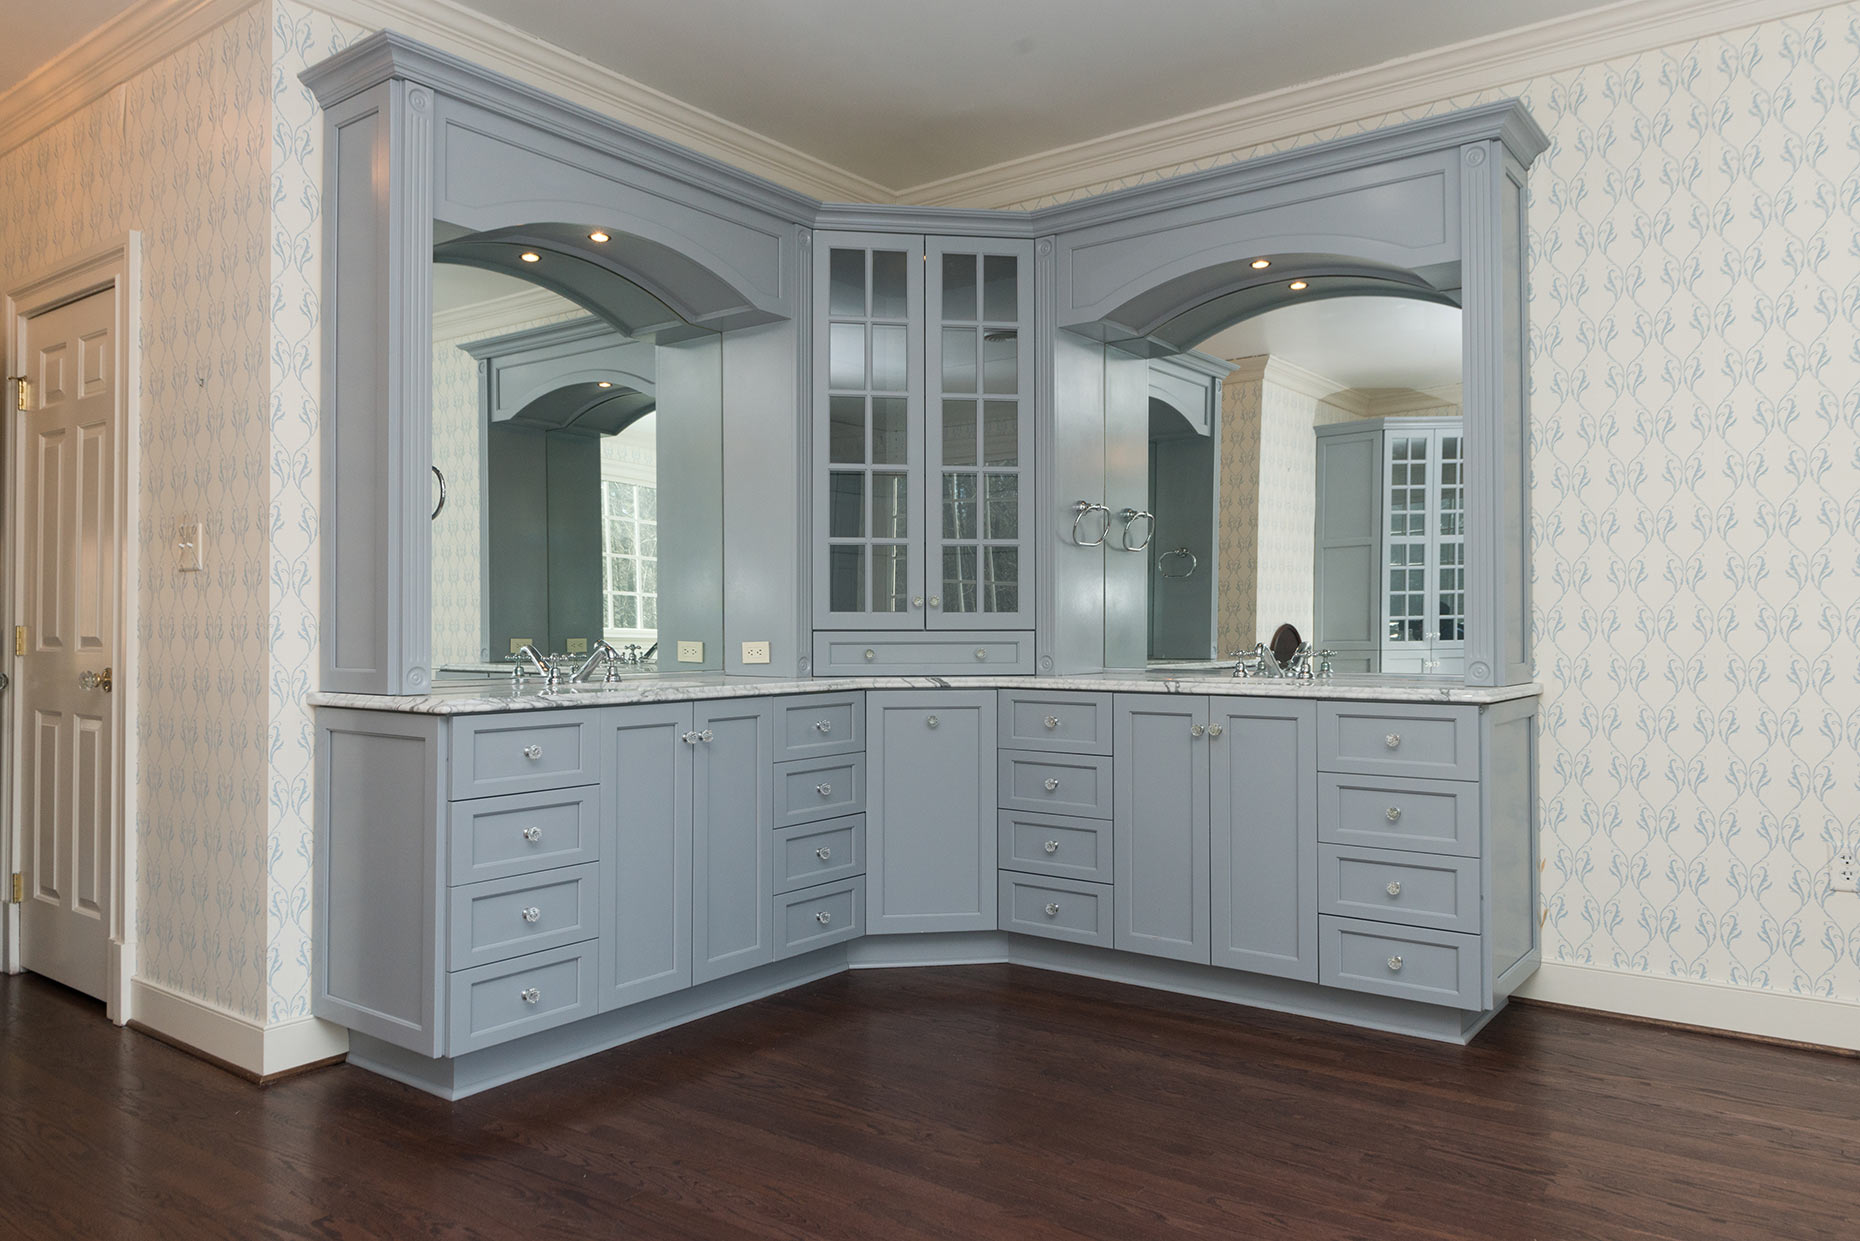 HJ-Holtz-Interior-Painting-Cabinets-Completed-7758